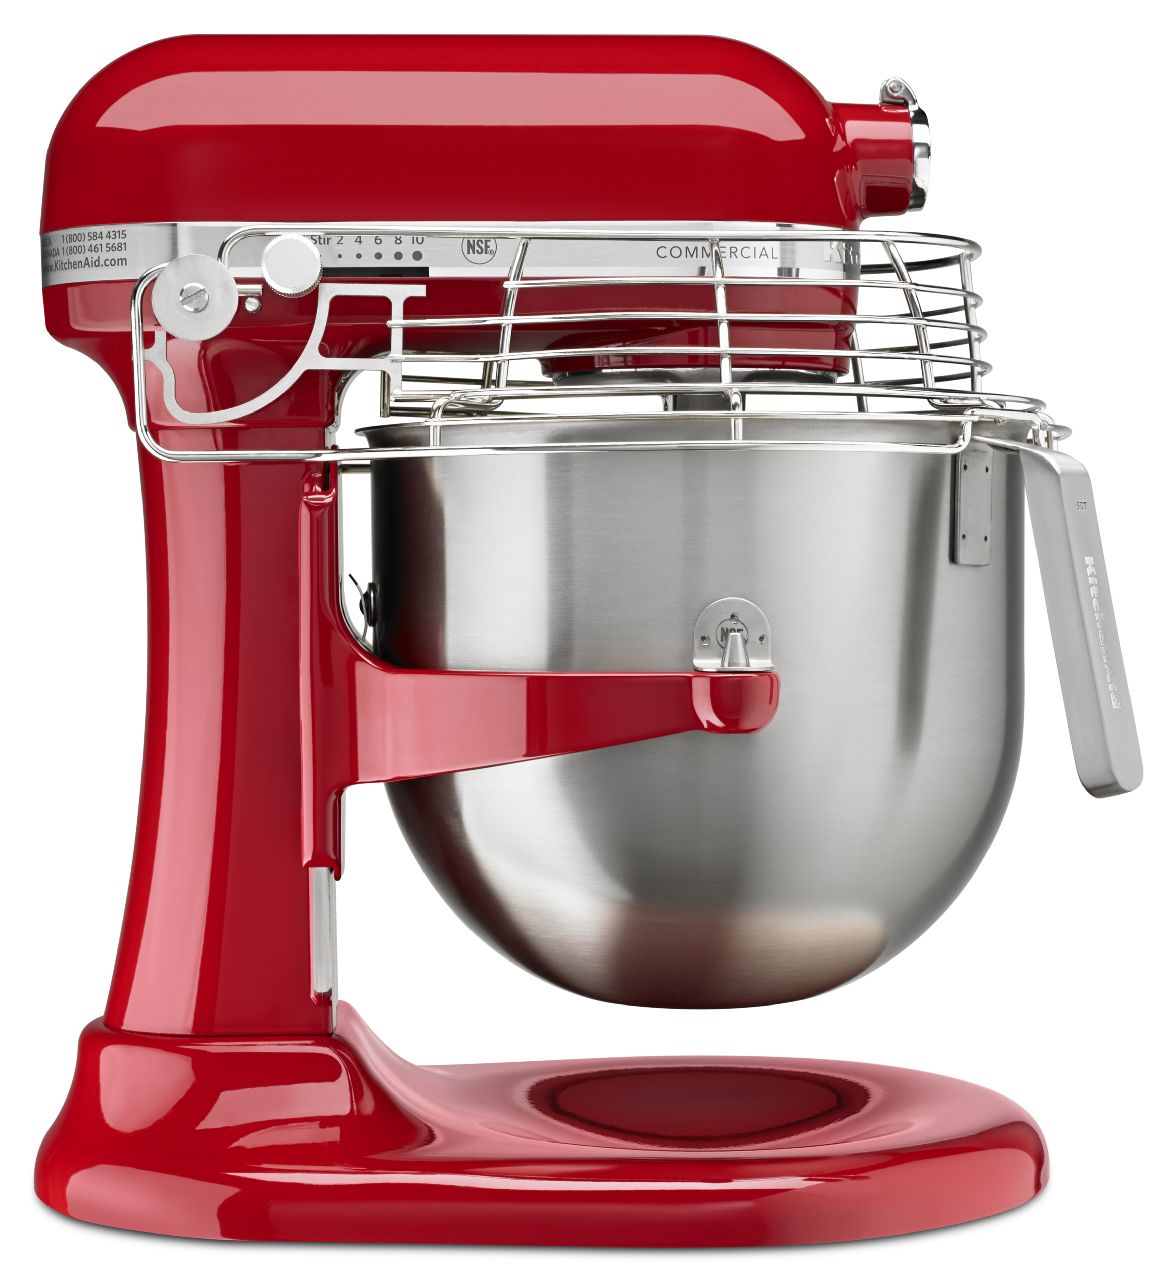 Kitchenaid 174 Nsf Certified 174 Commercial Series 8 Qt Bowl